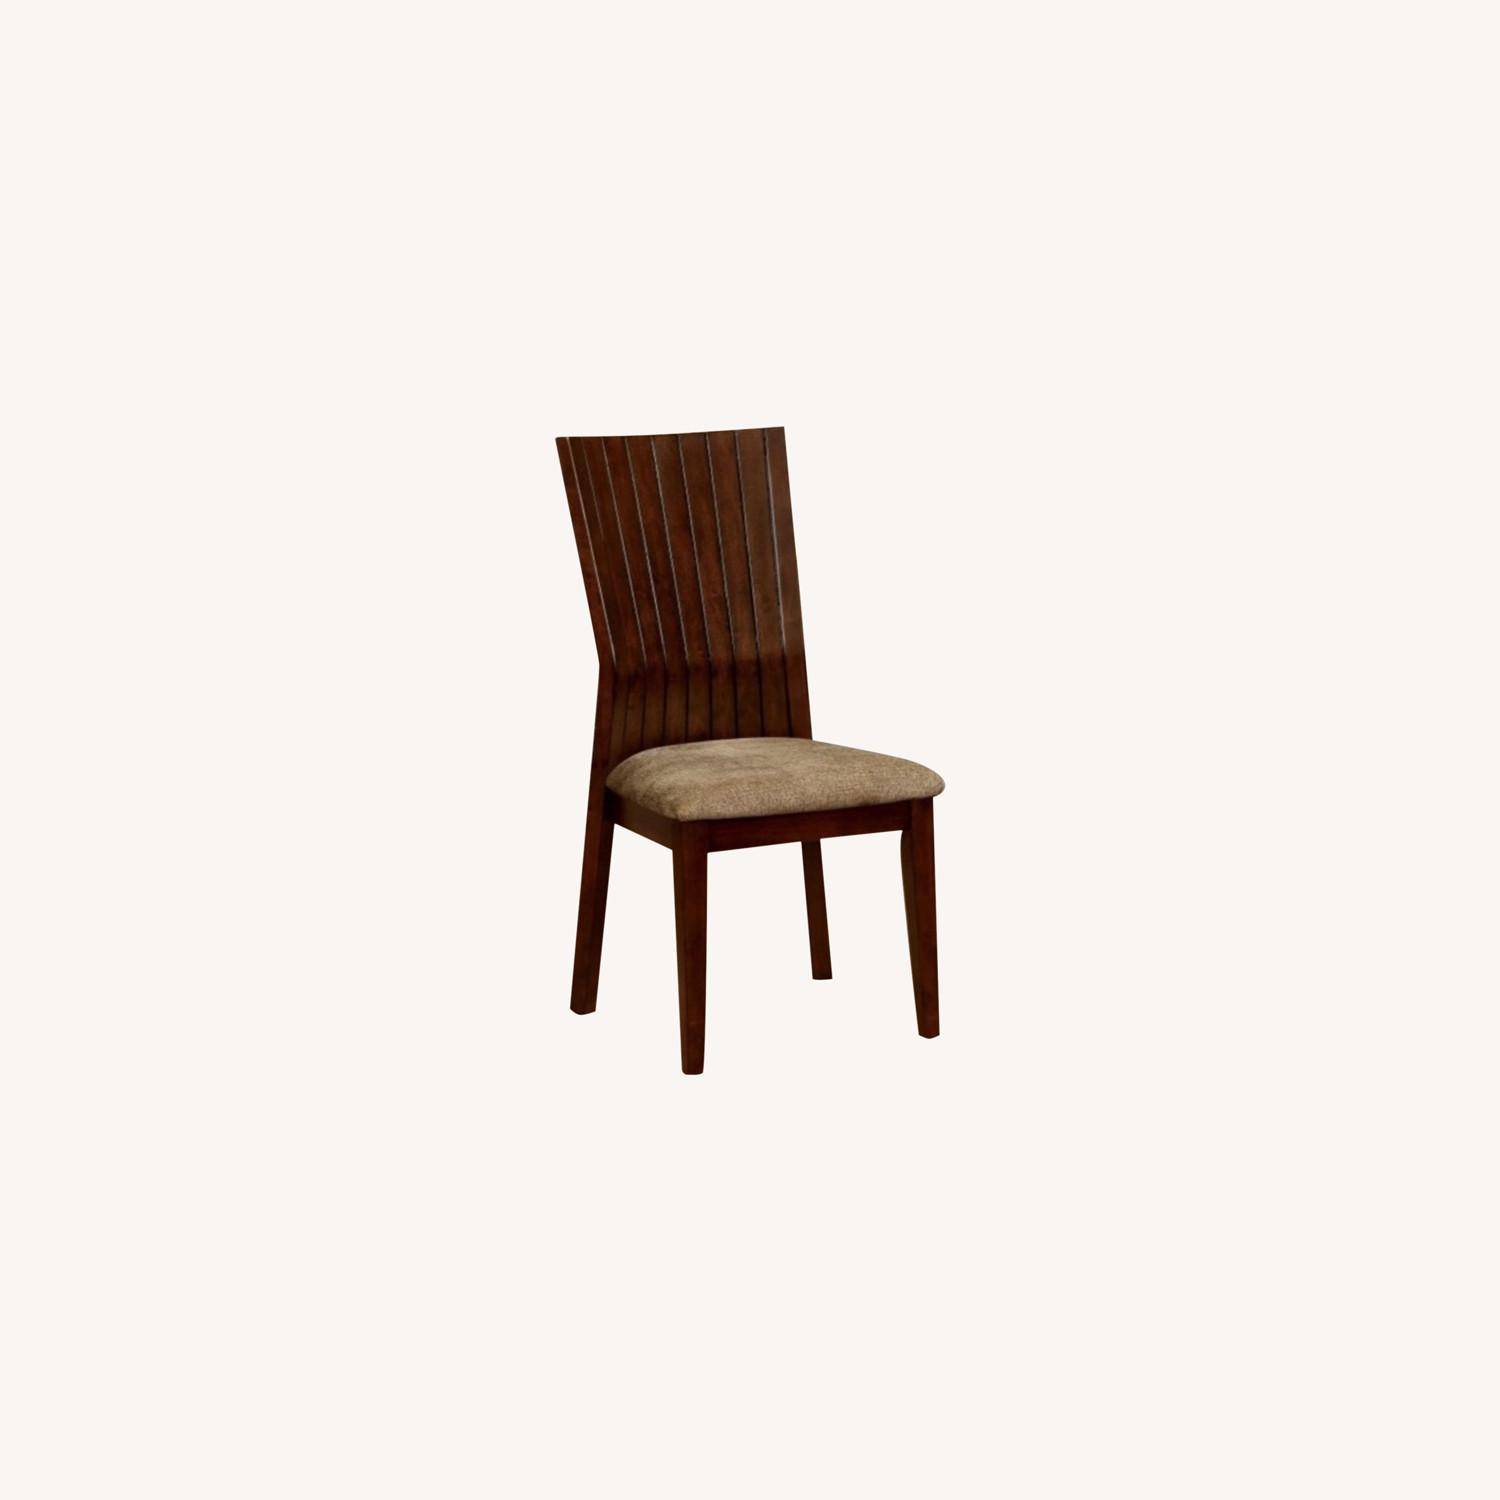 6 New Dining Chairs from Furniture of America - image-0